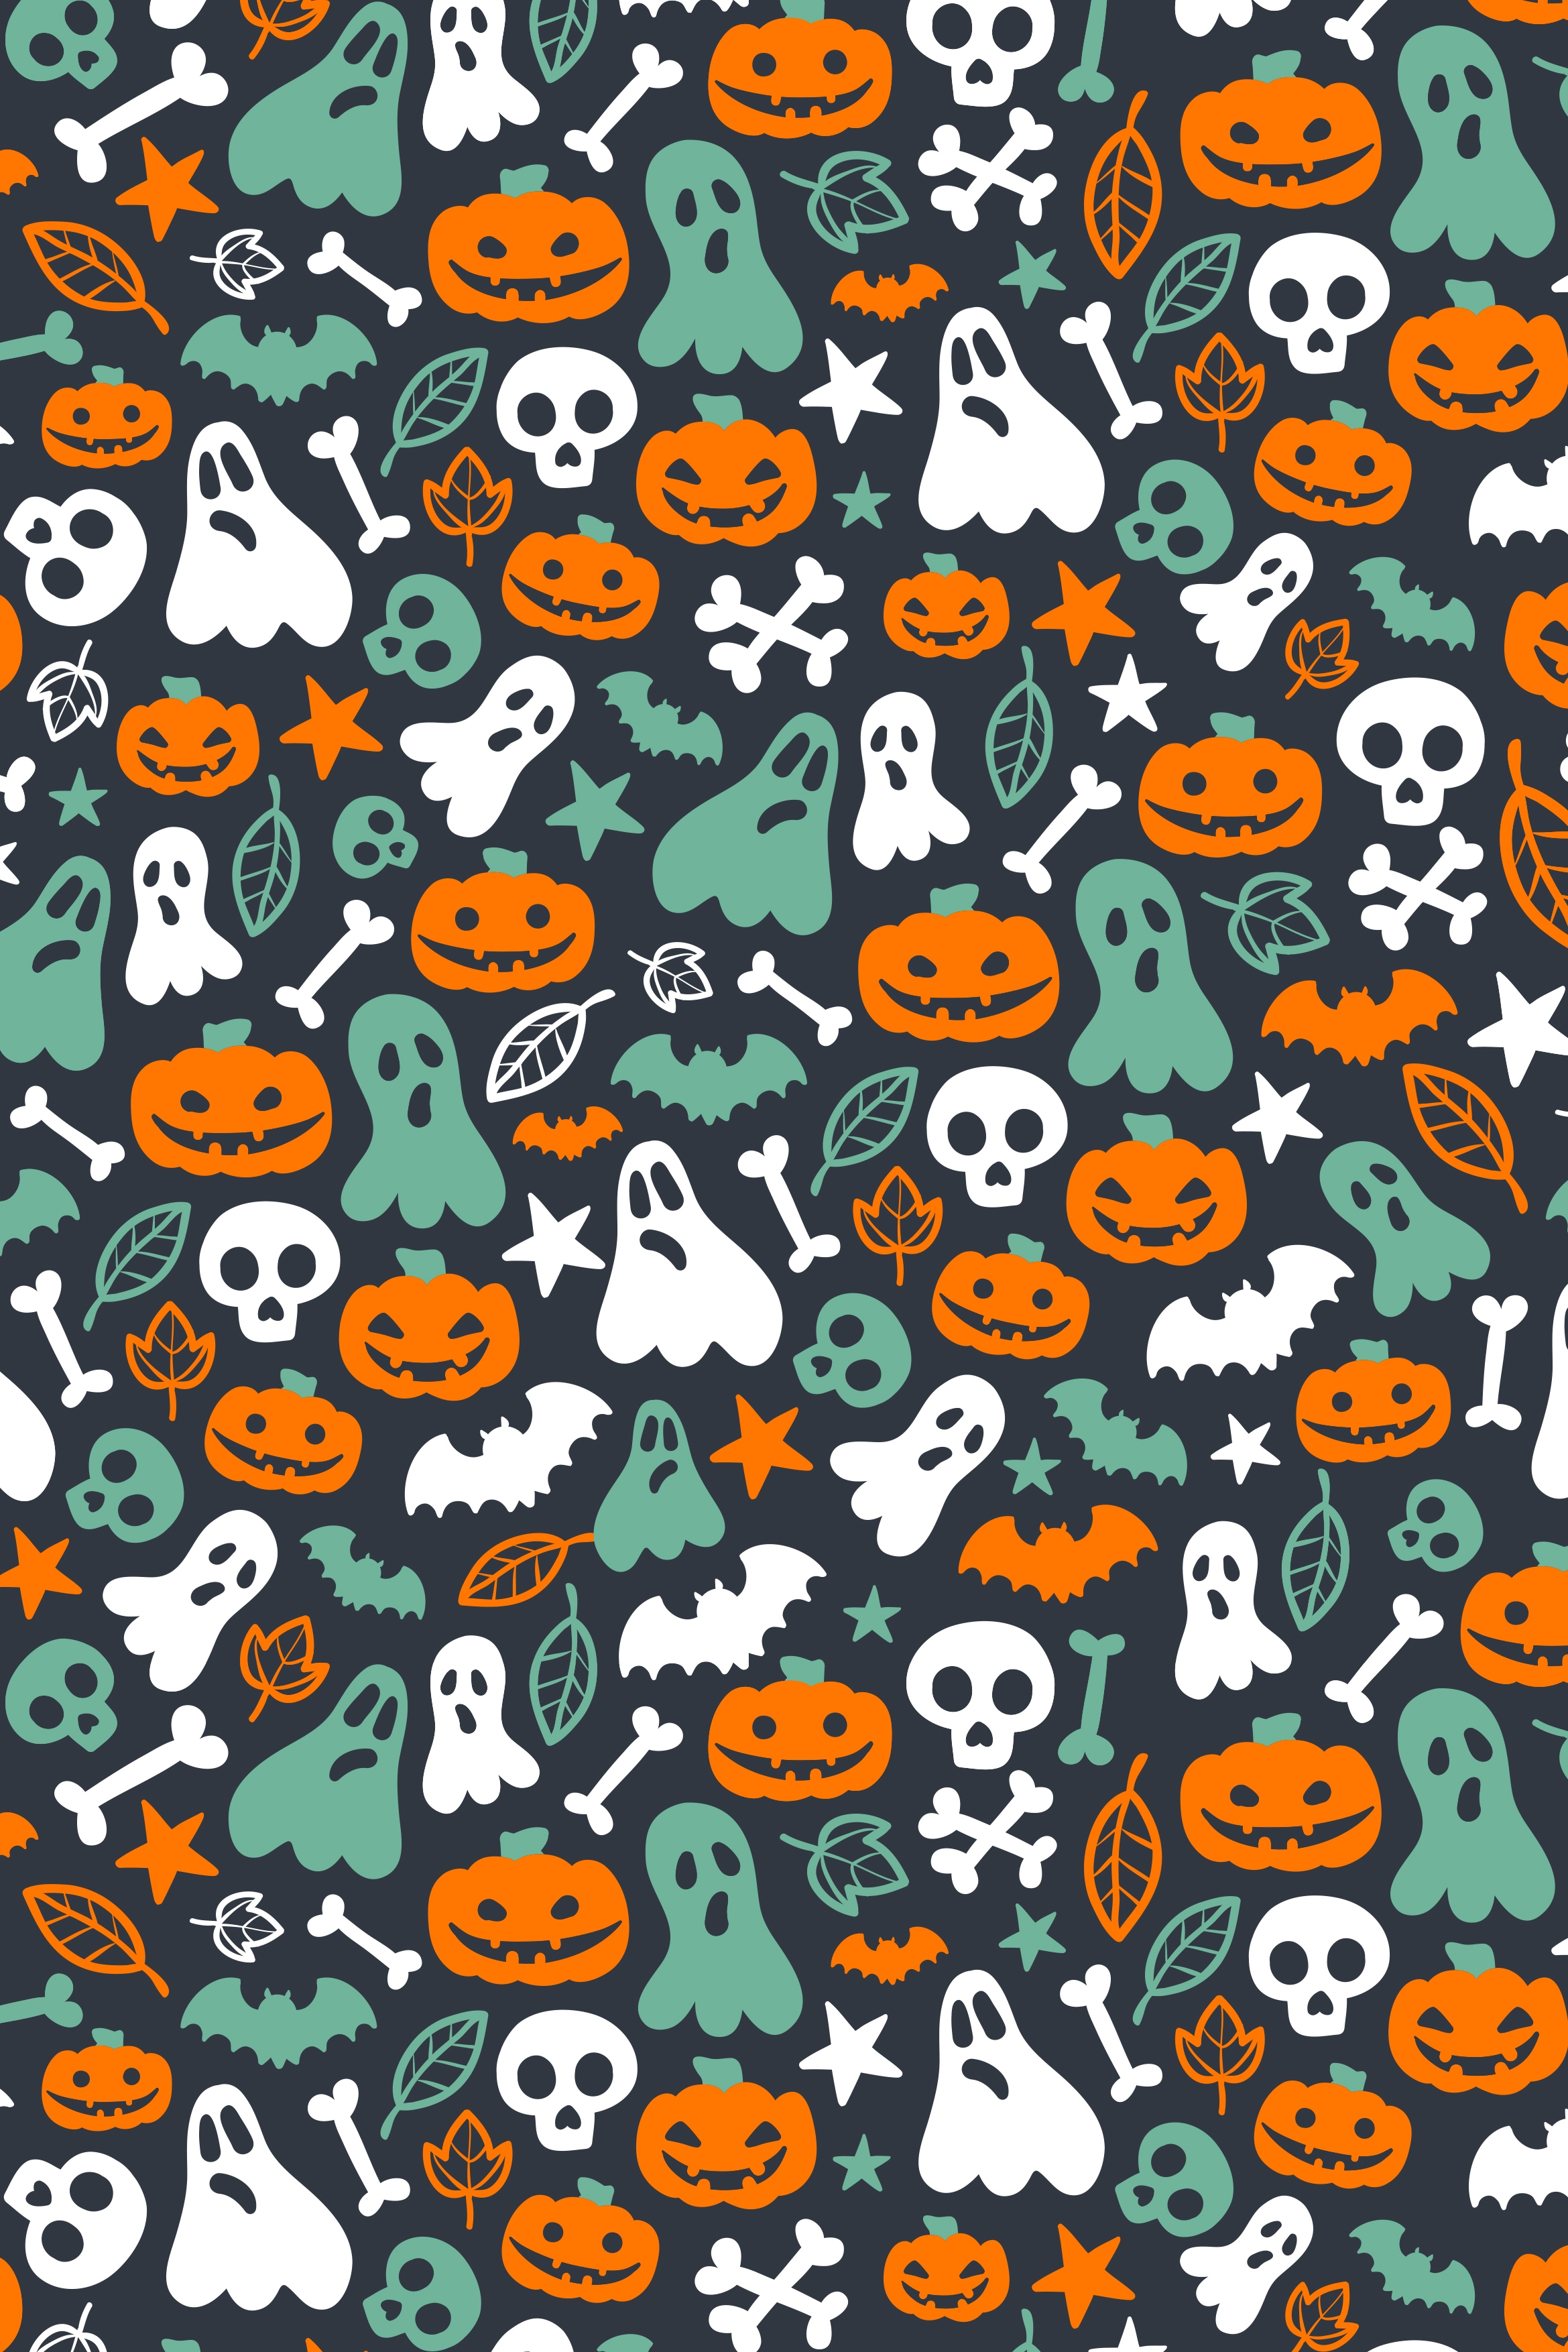 halloween vector pattern decoration retro illustration texture art abstract background